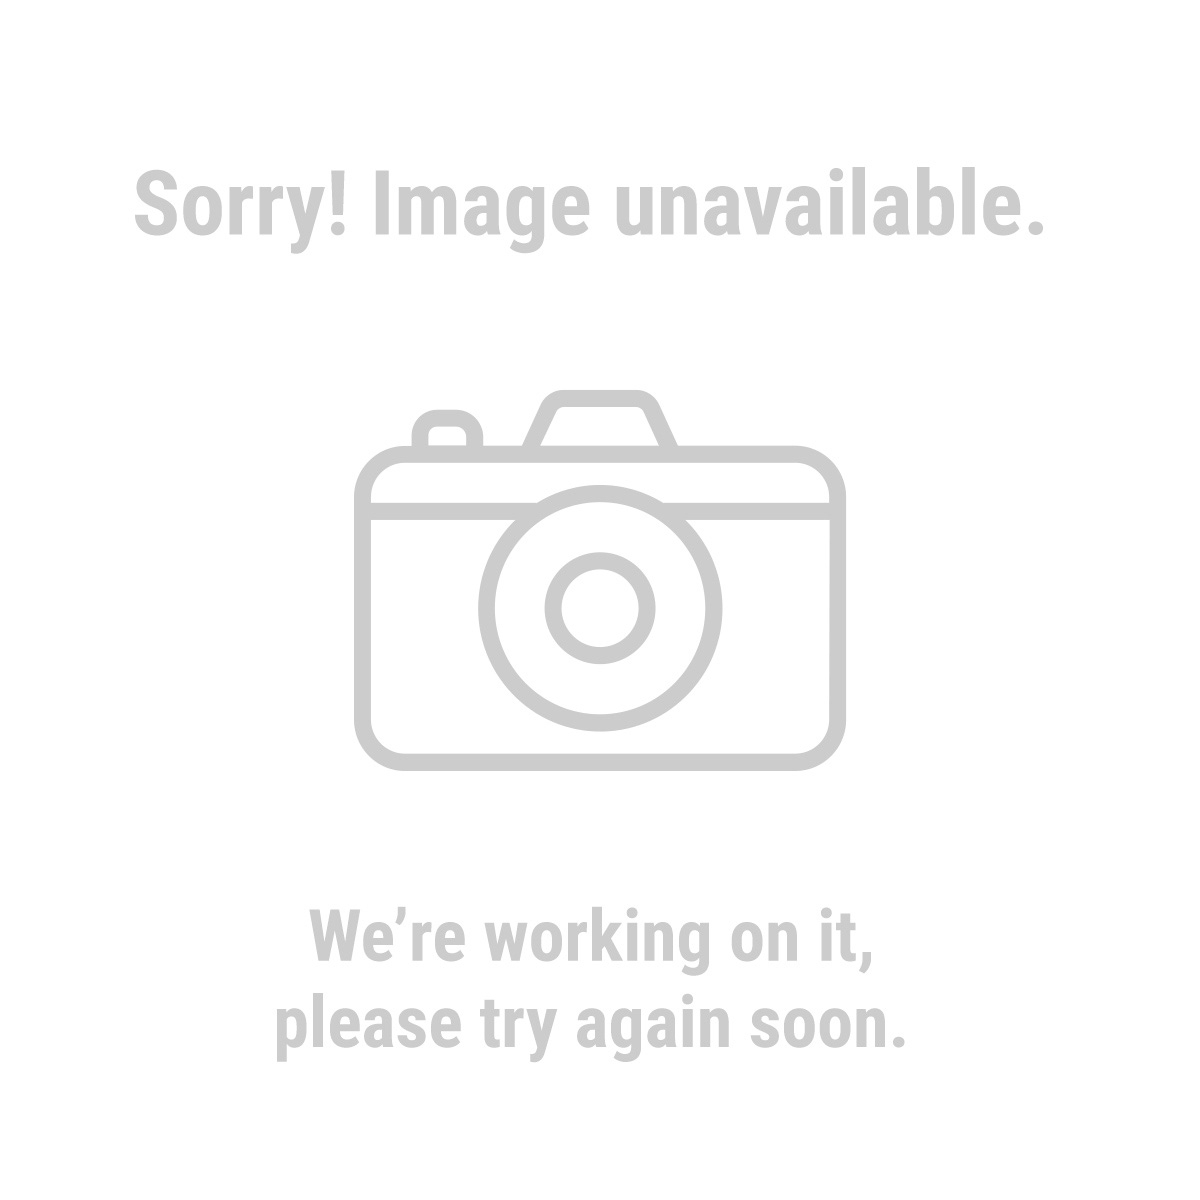 Warrior 68875 3 Piece Doormaker Stile / Raised Panel Router Bit Set